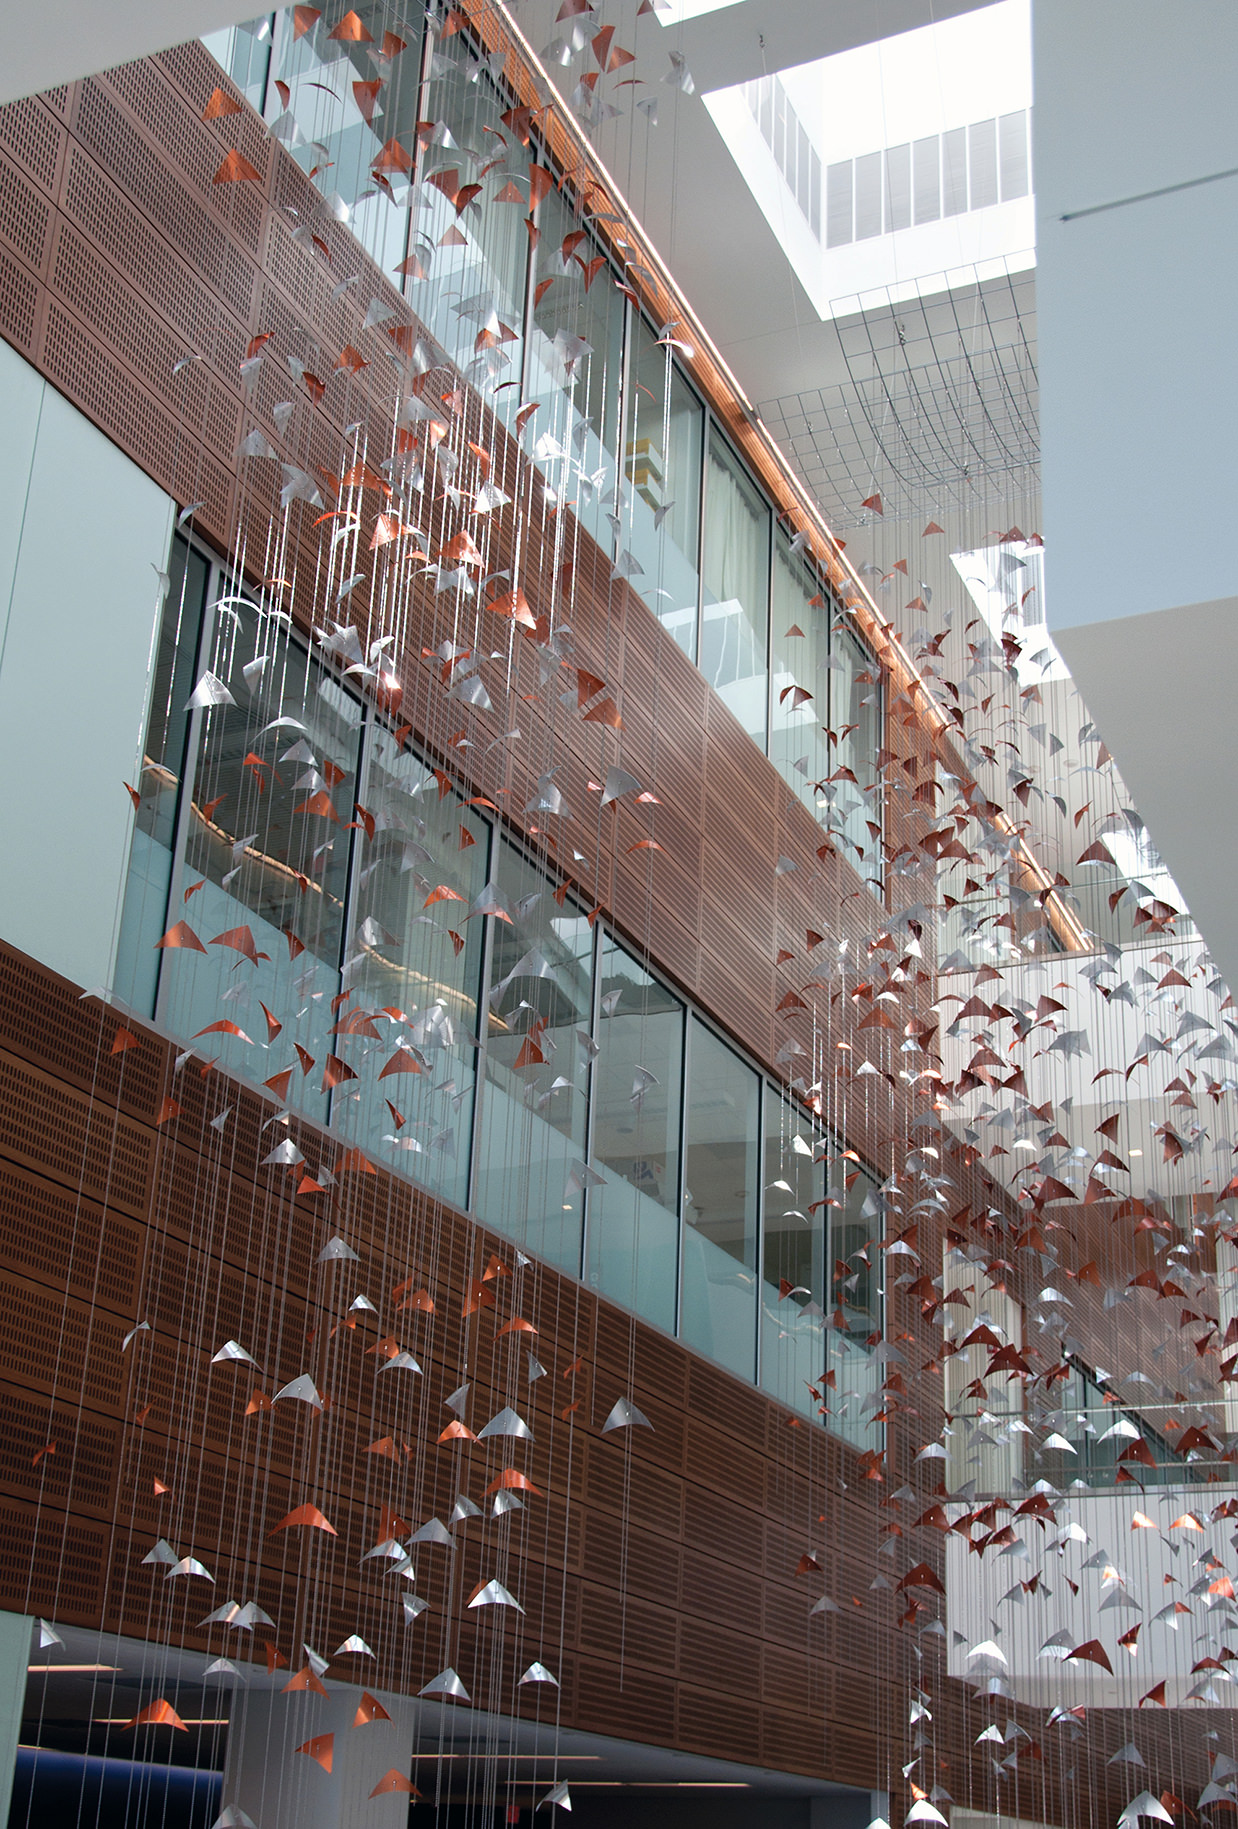 Talley Fisher's Primordium in the atrium in Clinical and Translational Research Center, University of Buffalo